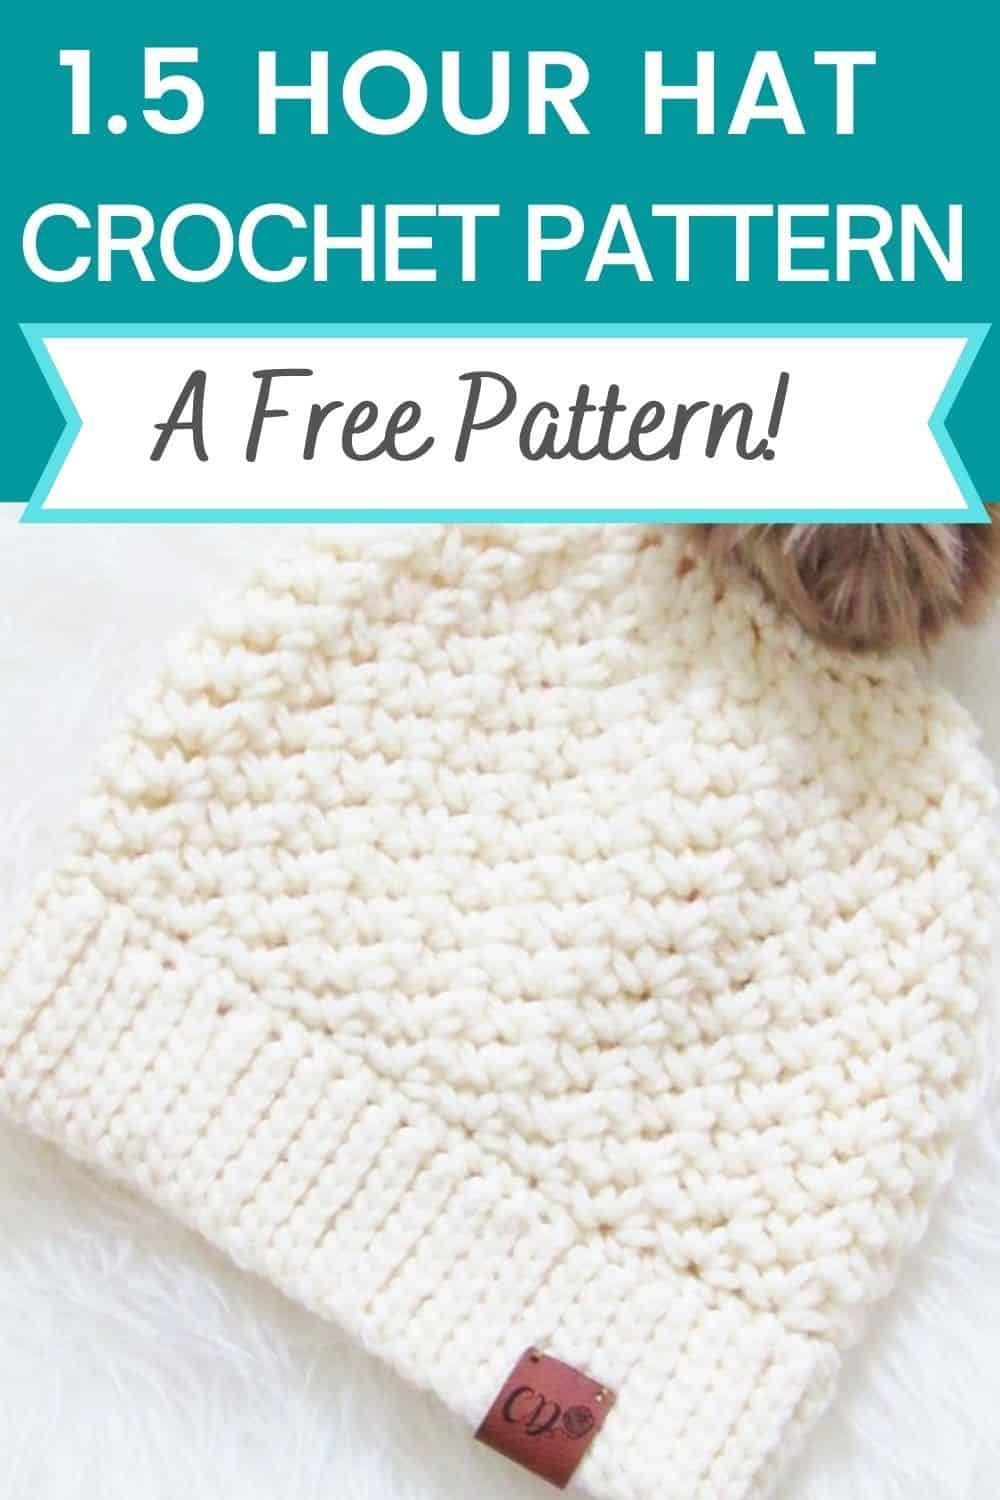 Do you love simple and easy hat crochet patterns? Then this free chunky beanie